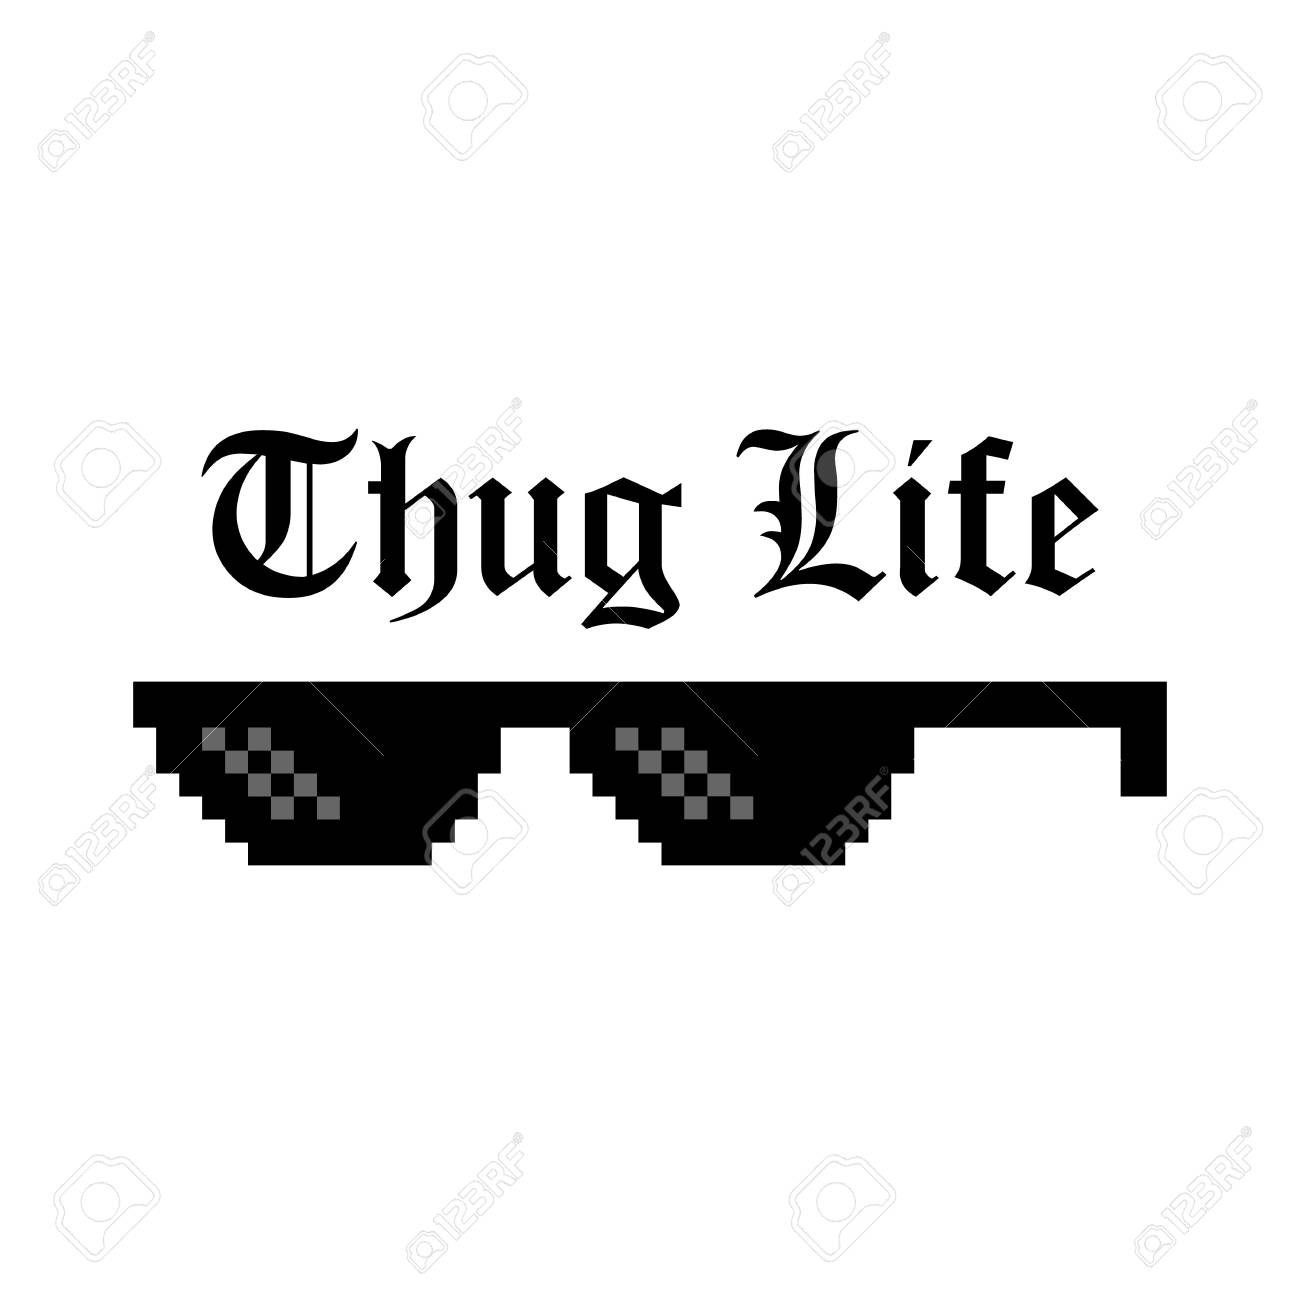 e1809c2916d0 Creative vector illustration of pixel glasses of thug life meme isolated on transparent  background. Ghetto